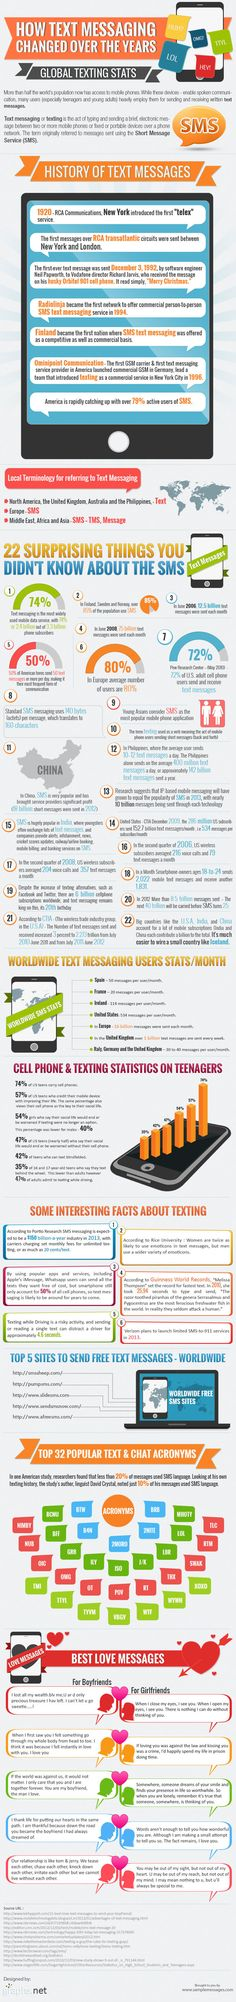 How Text Messaging Changed Over The Years